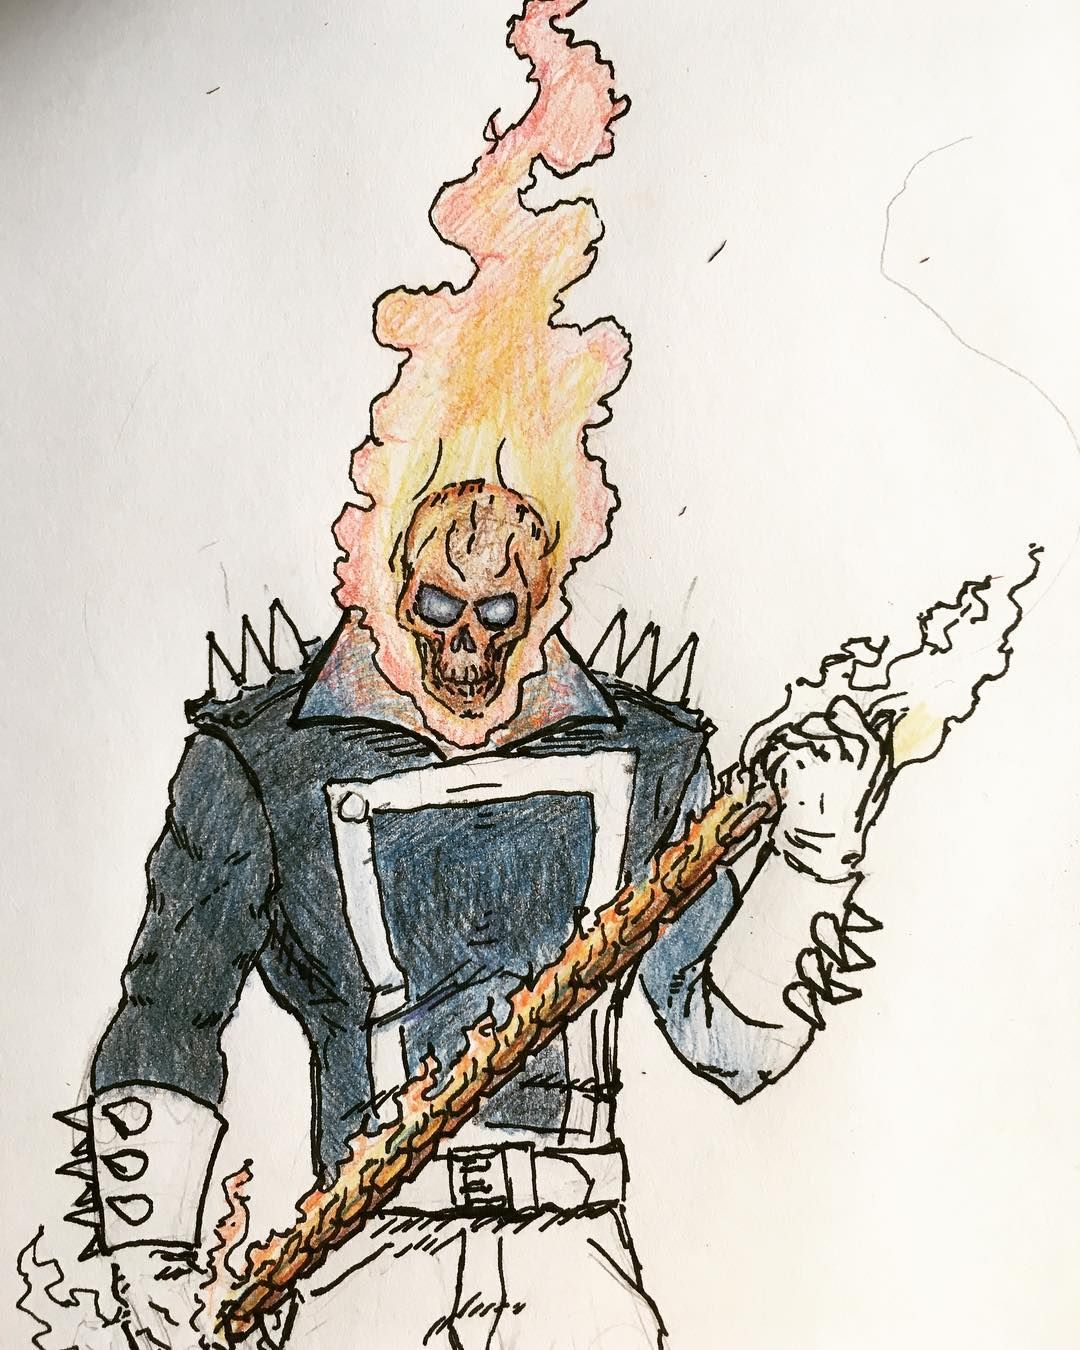 Test ghost rider i havent used colored pencils in a while thanks